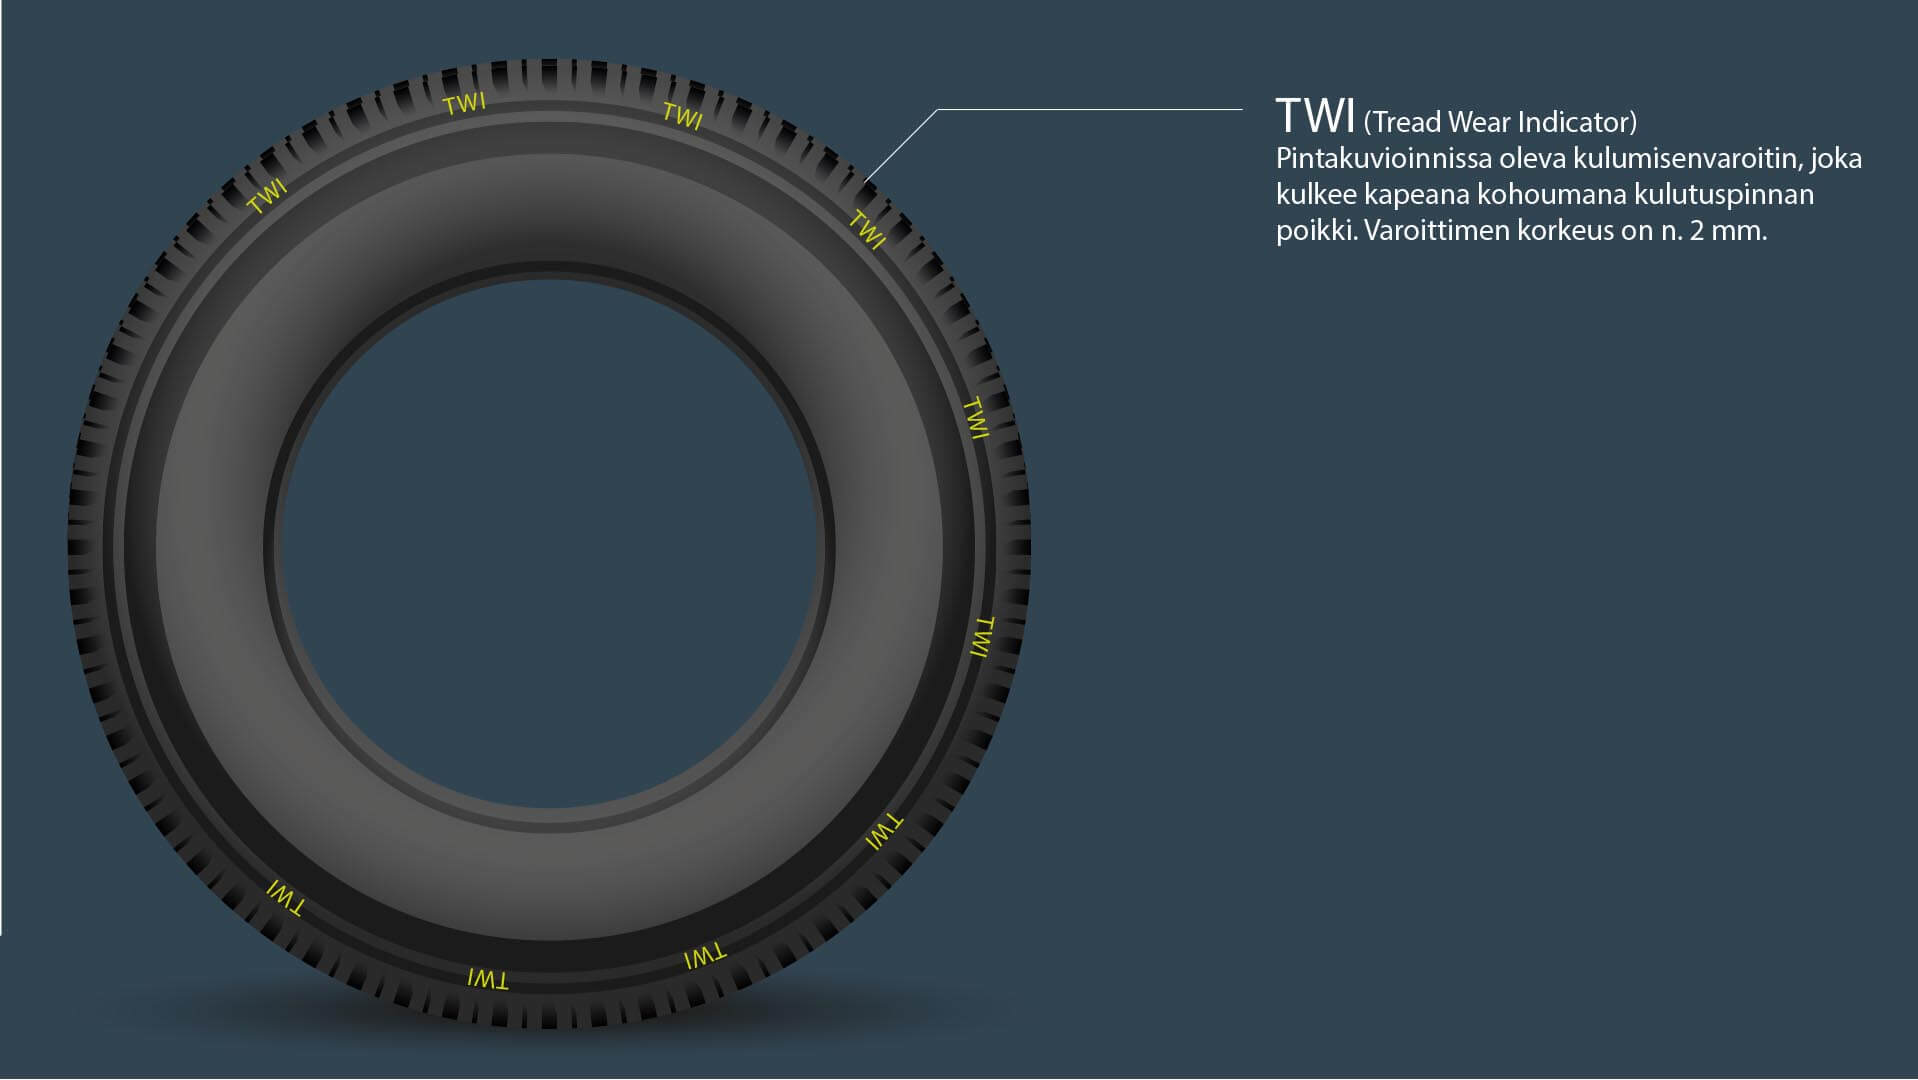 Rengasmerkinnät - TWI Tread Wear Indicator